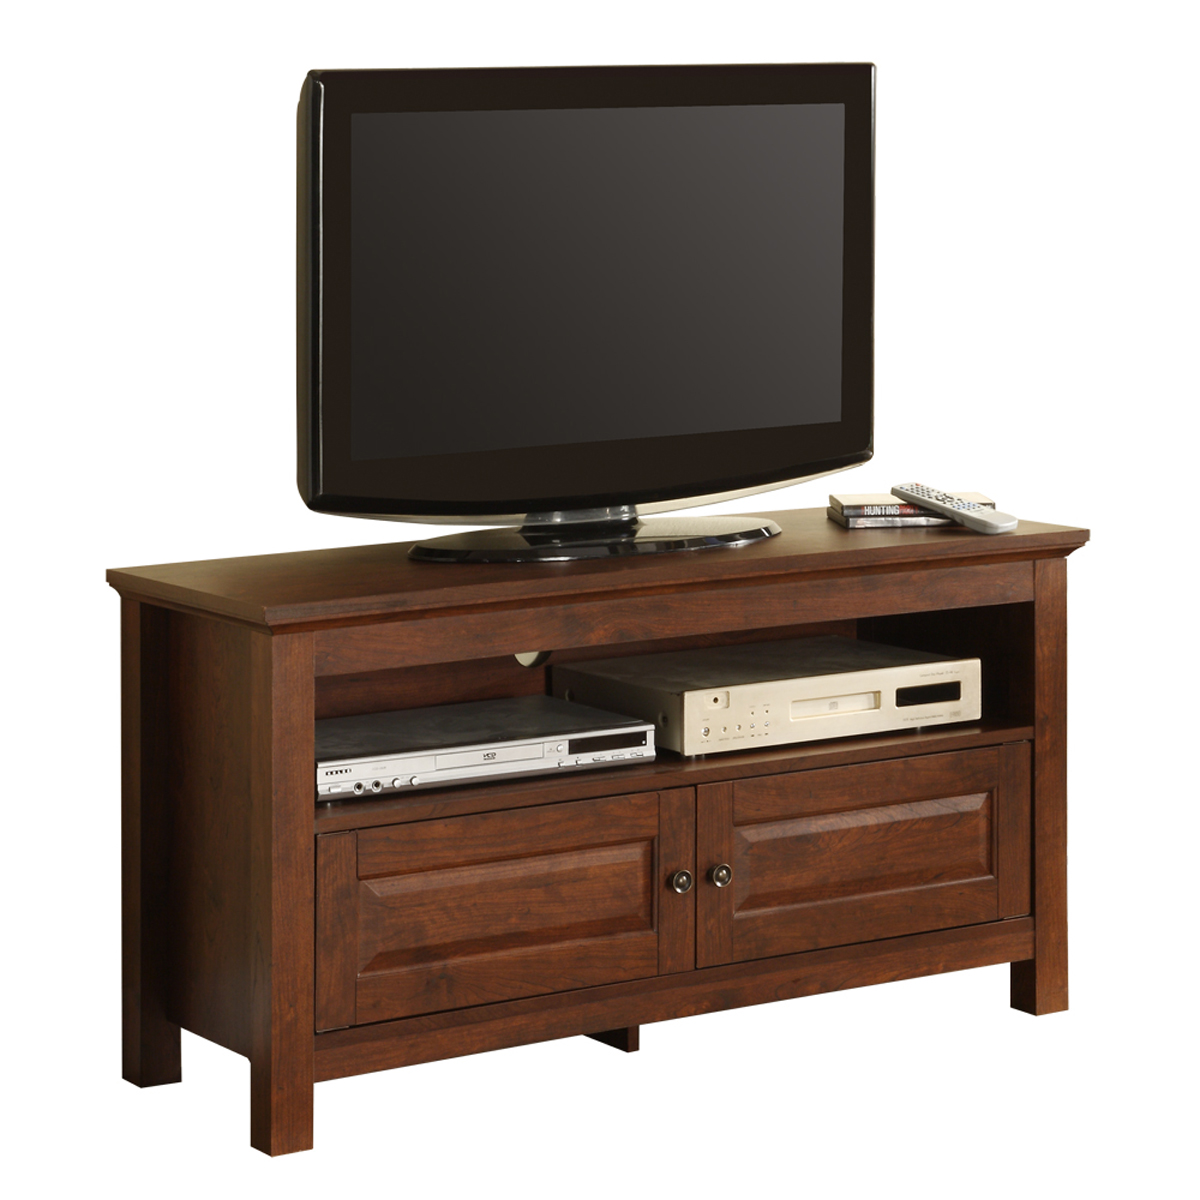 Wood Tv Stands ~ Inch wood tv stand with media storage by walker edison